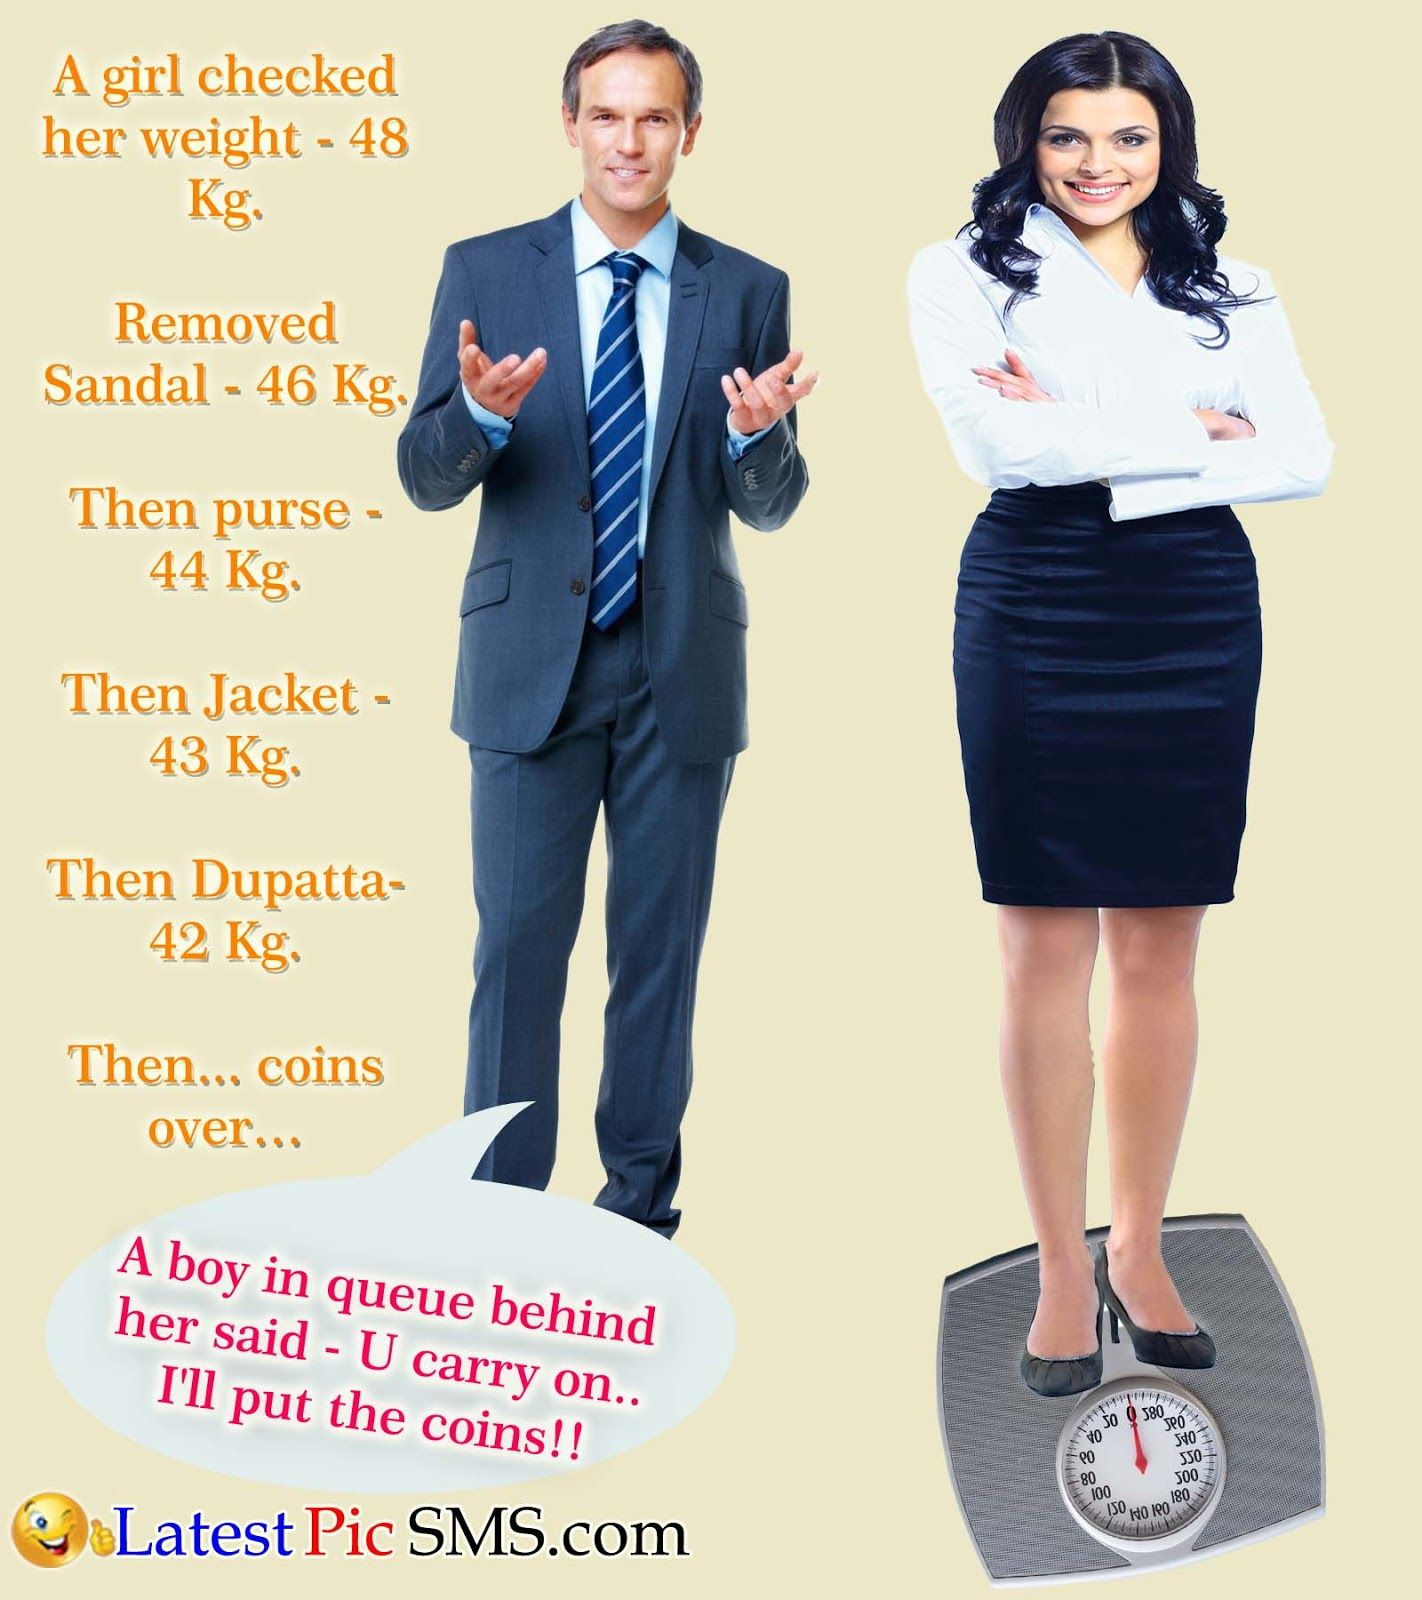 girl weight funny jokes (With images) Jokes photos